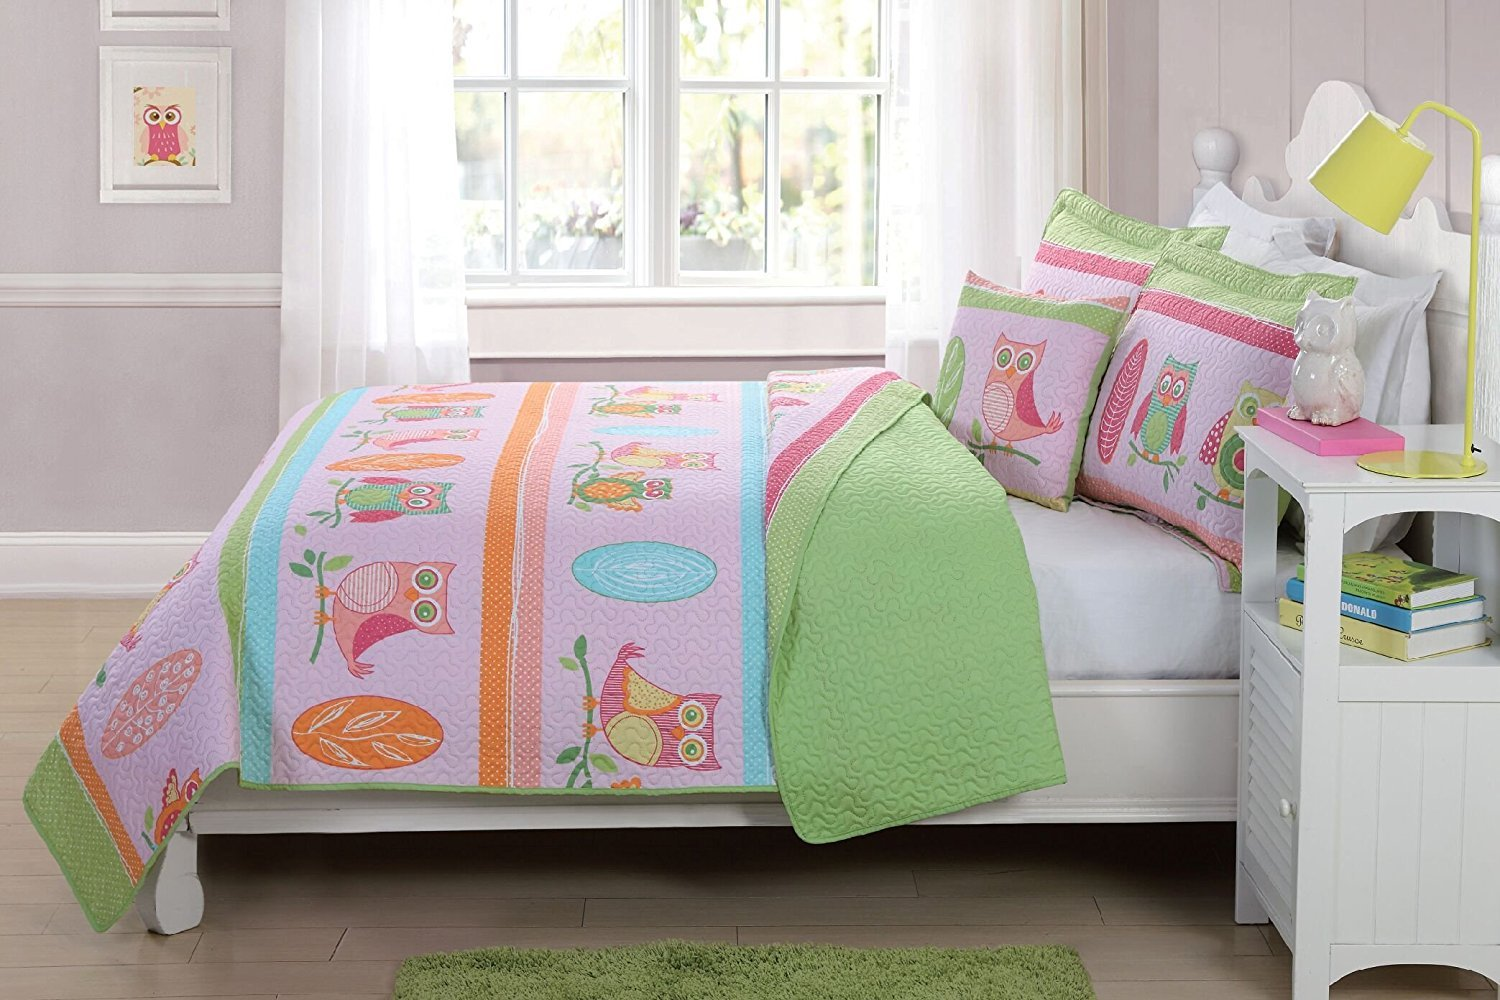 Elegant Home Cute Owl Design Fun Multicolor Pink Blue Orange Green Reversible 4 Piece Quilt Bedspread Set with Decorative Pillow for Kids/Girls (Full Size)